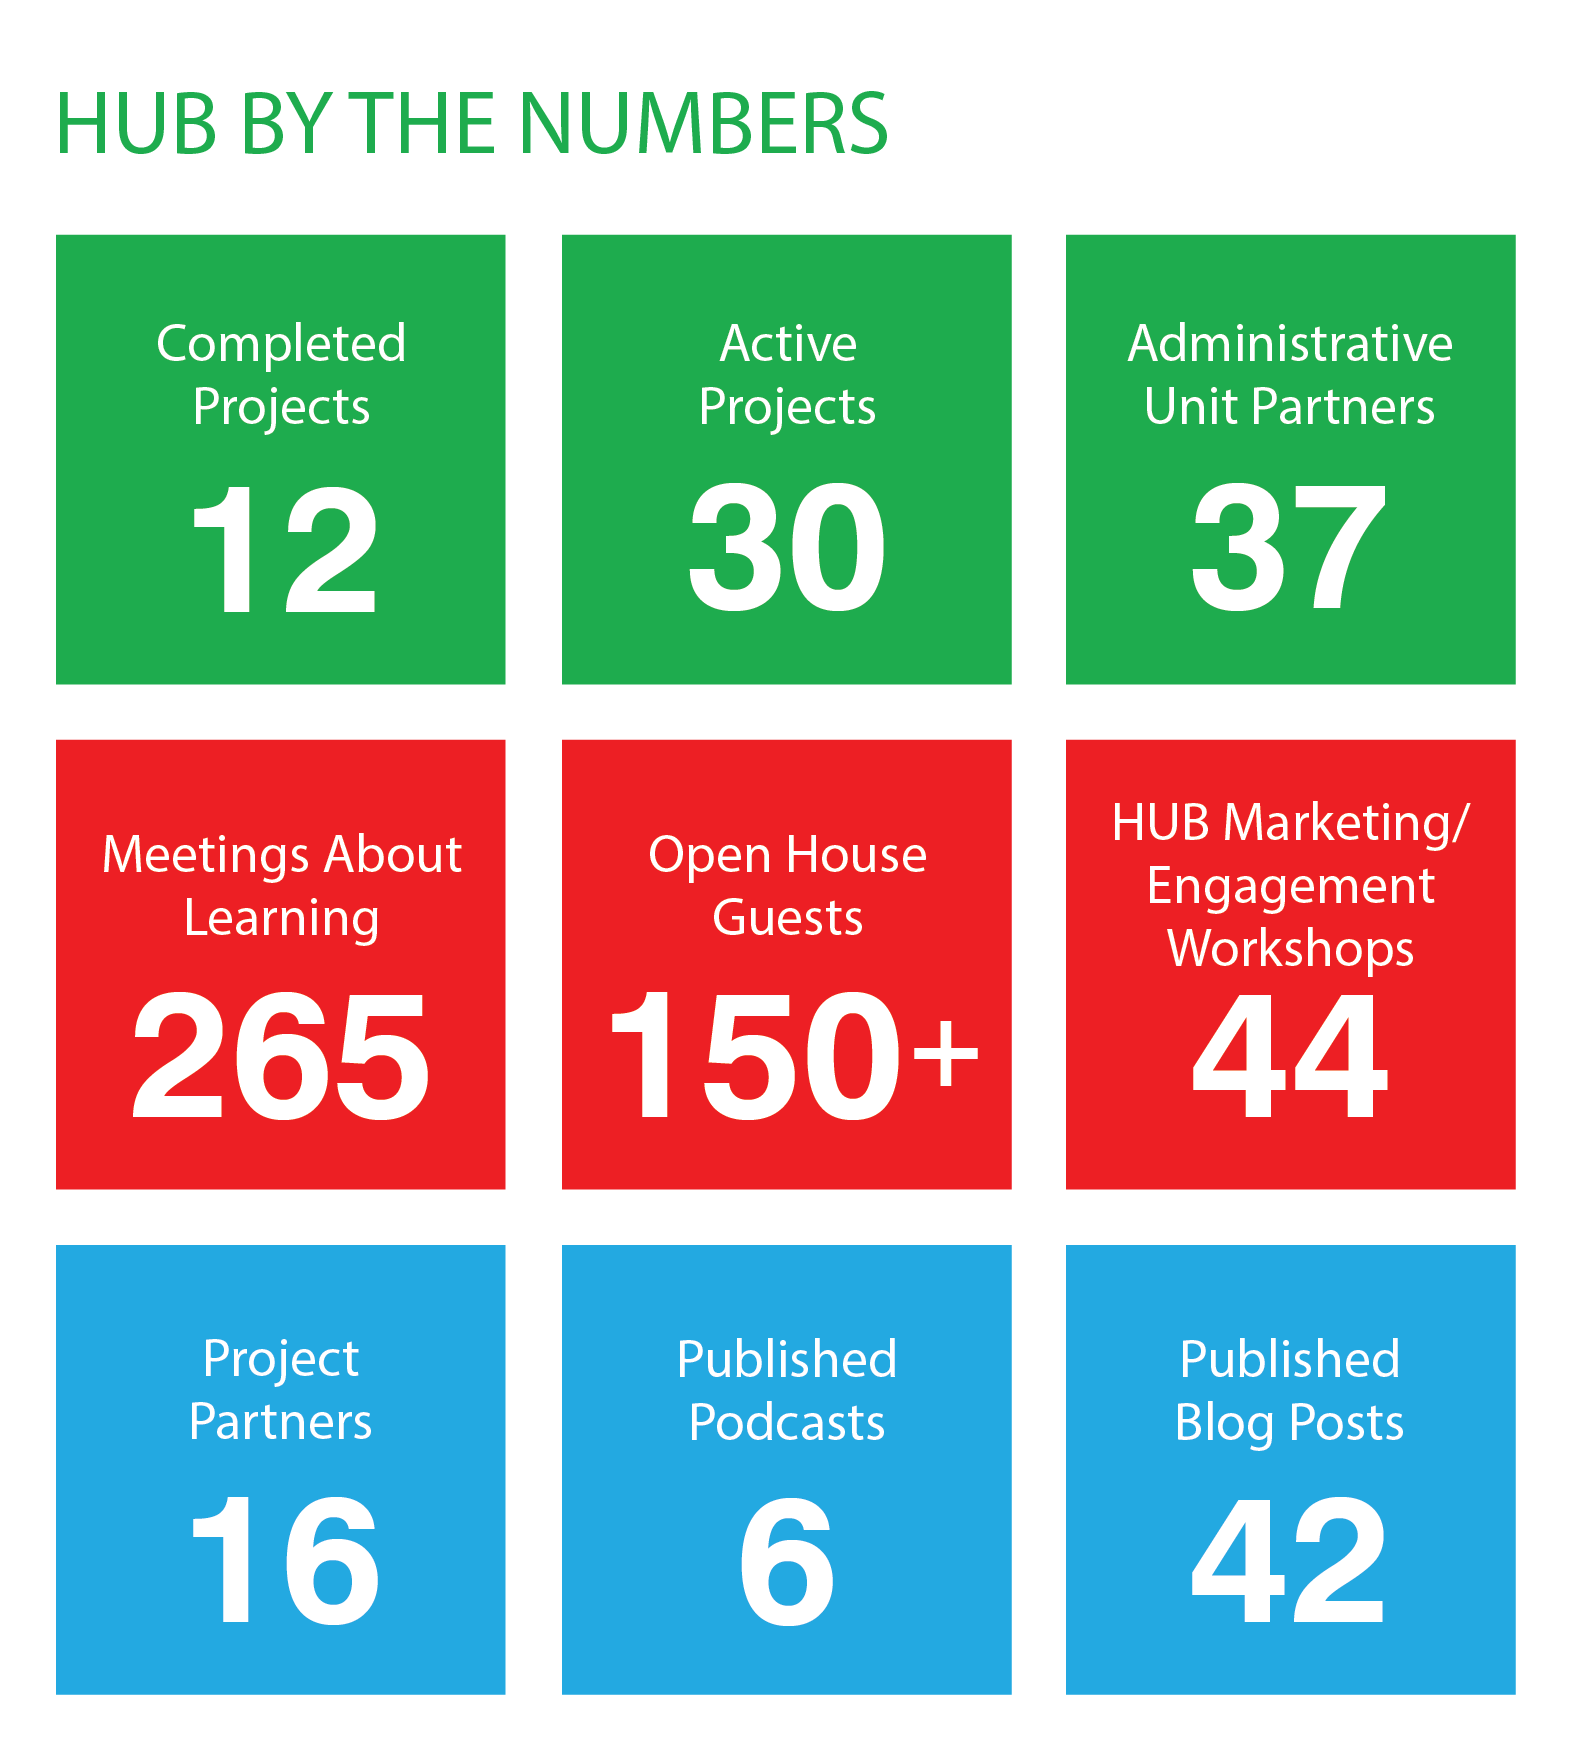 Hub By The Numbers